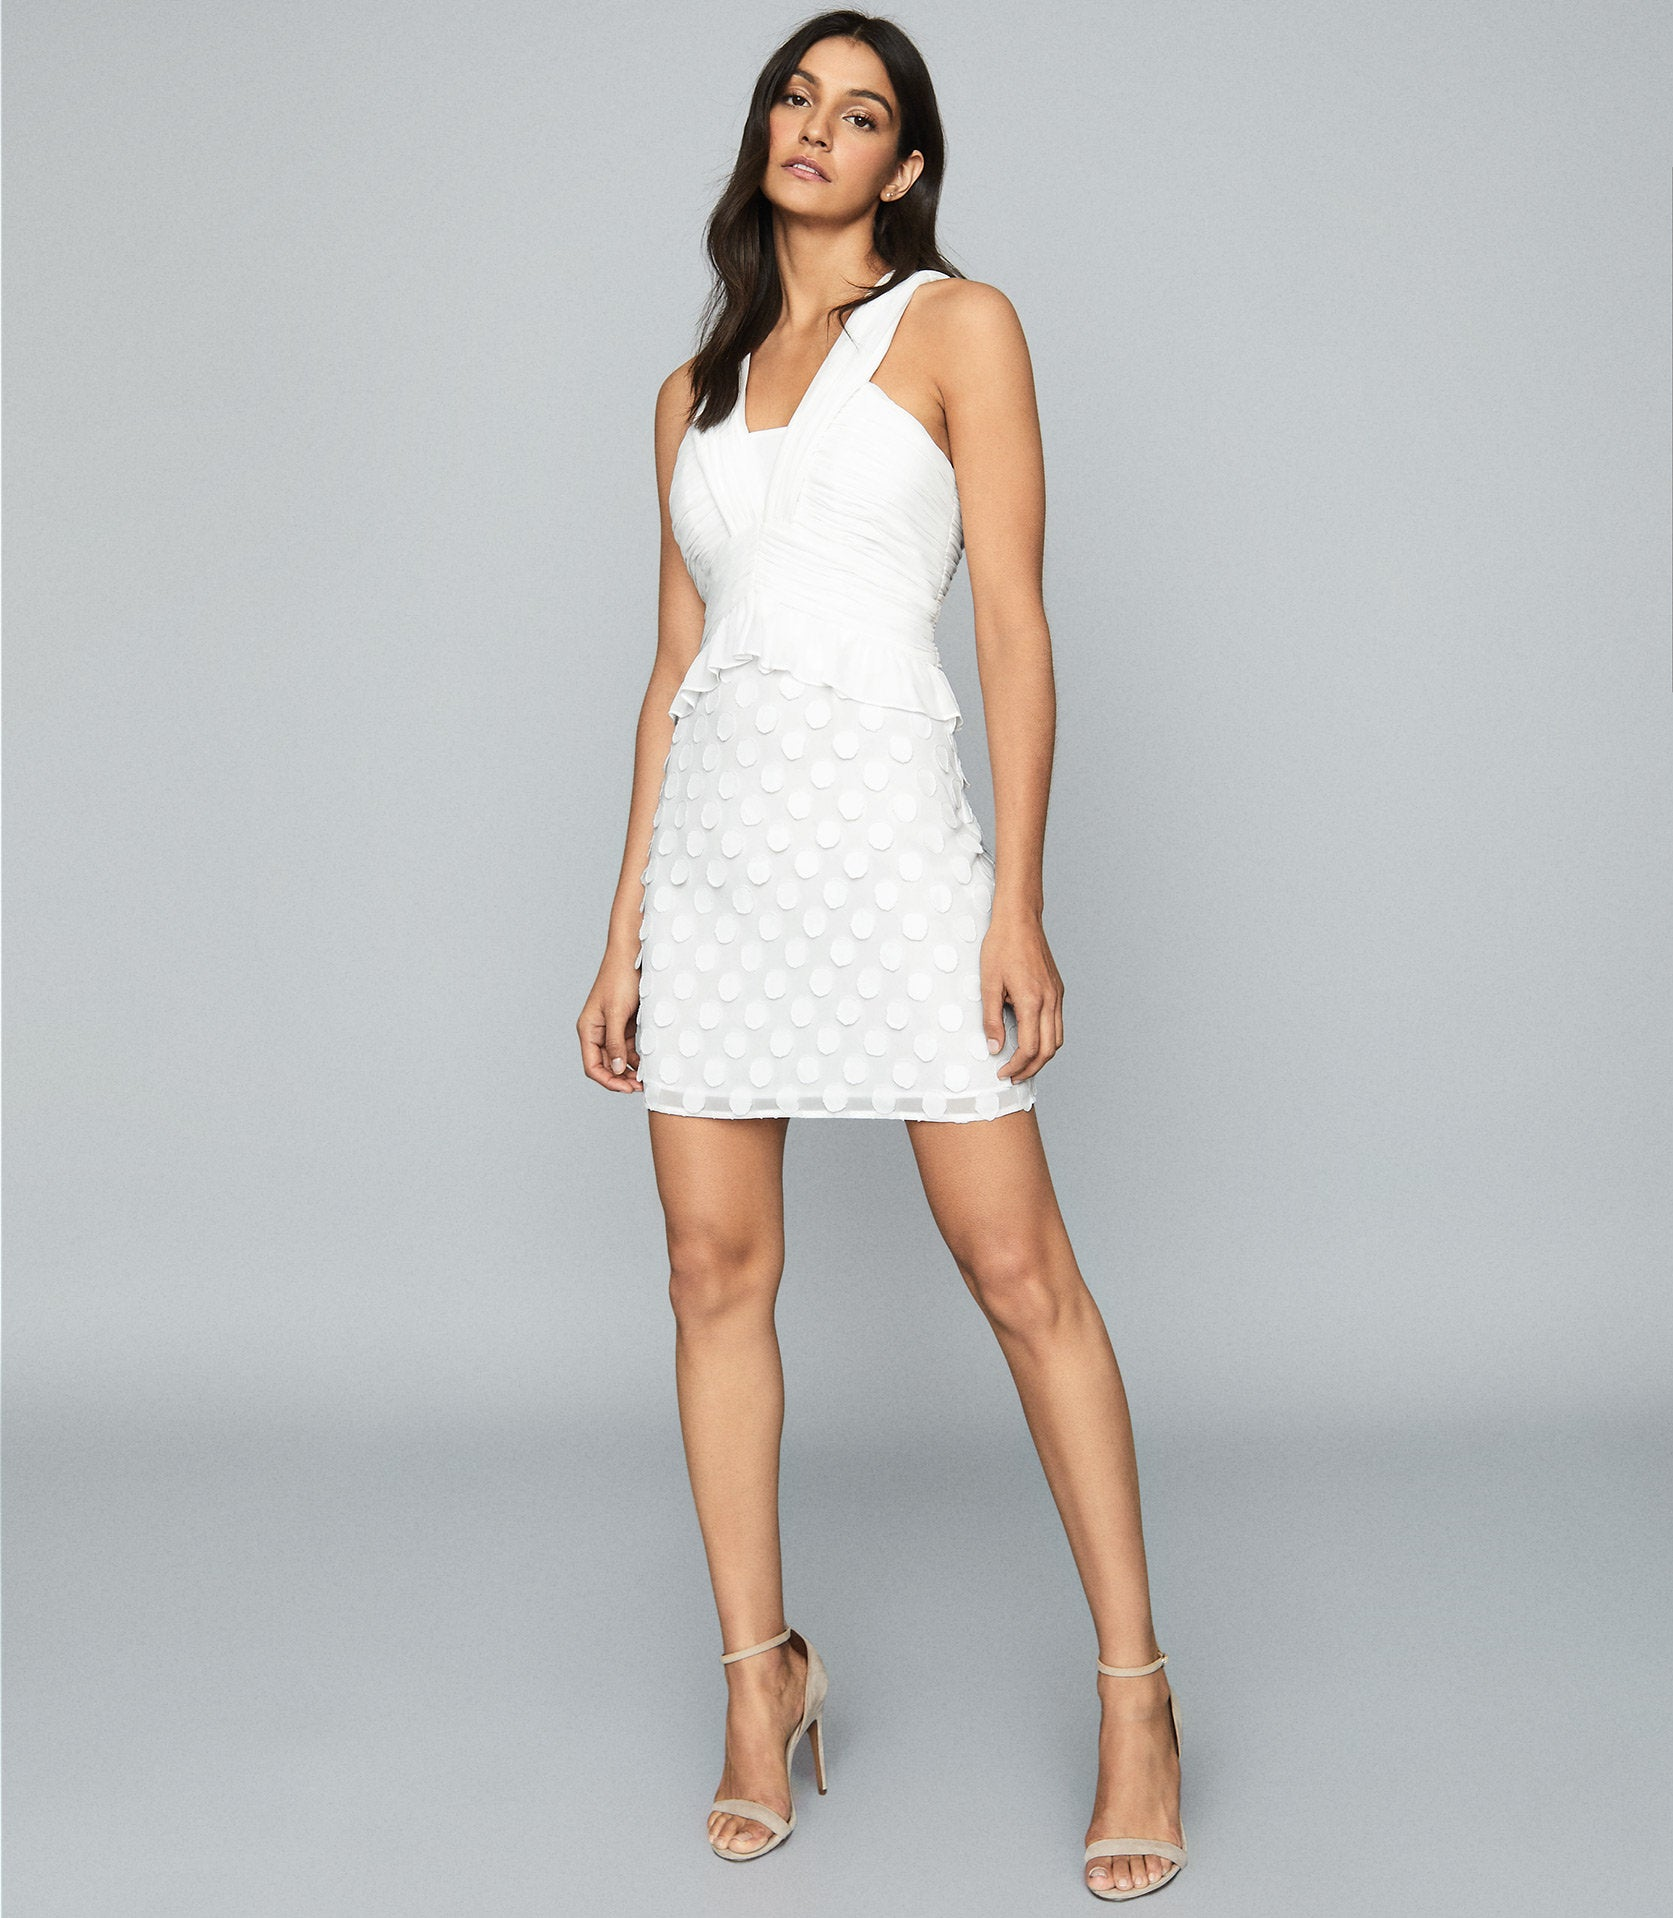 reiss white dress